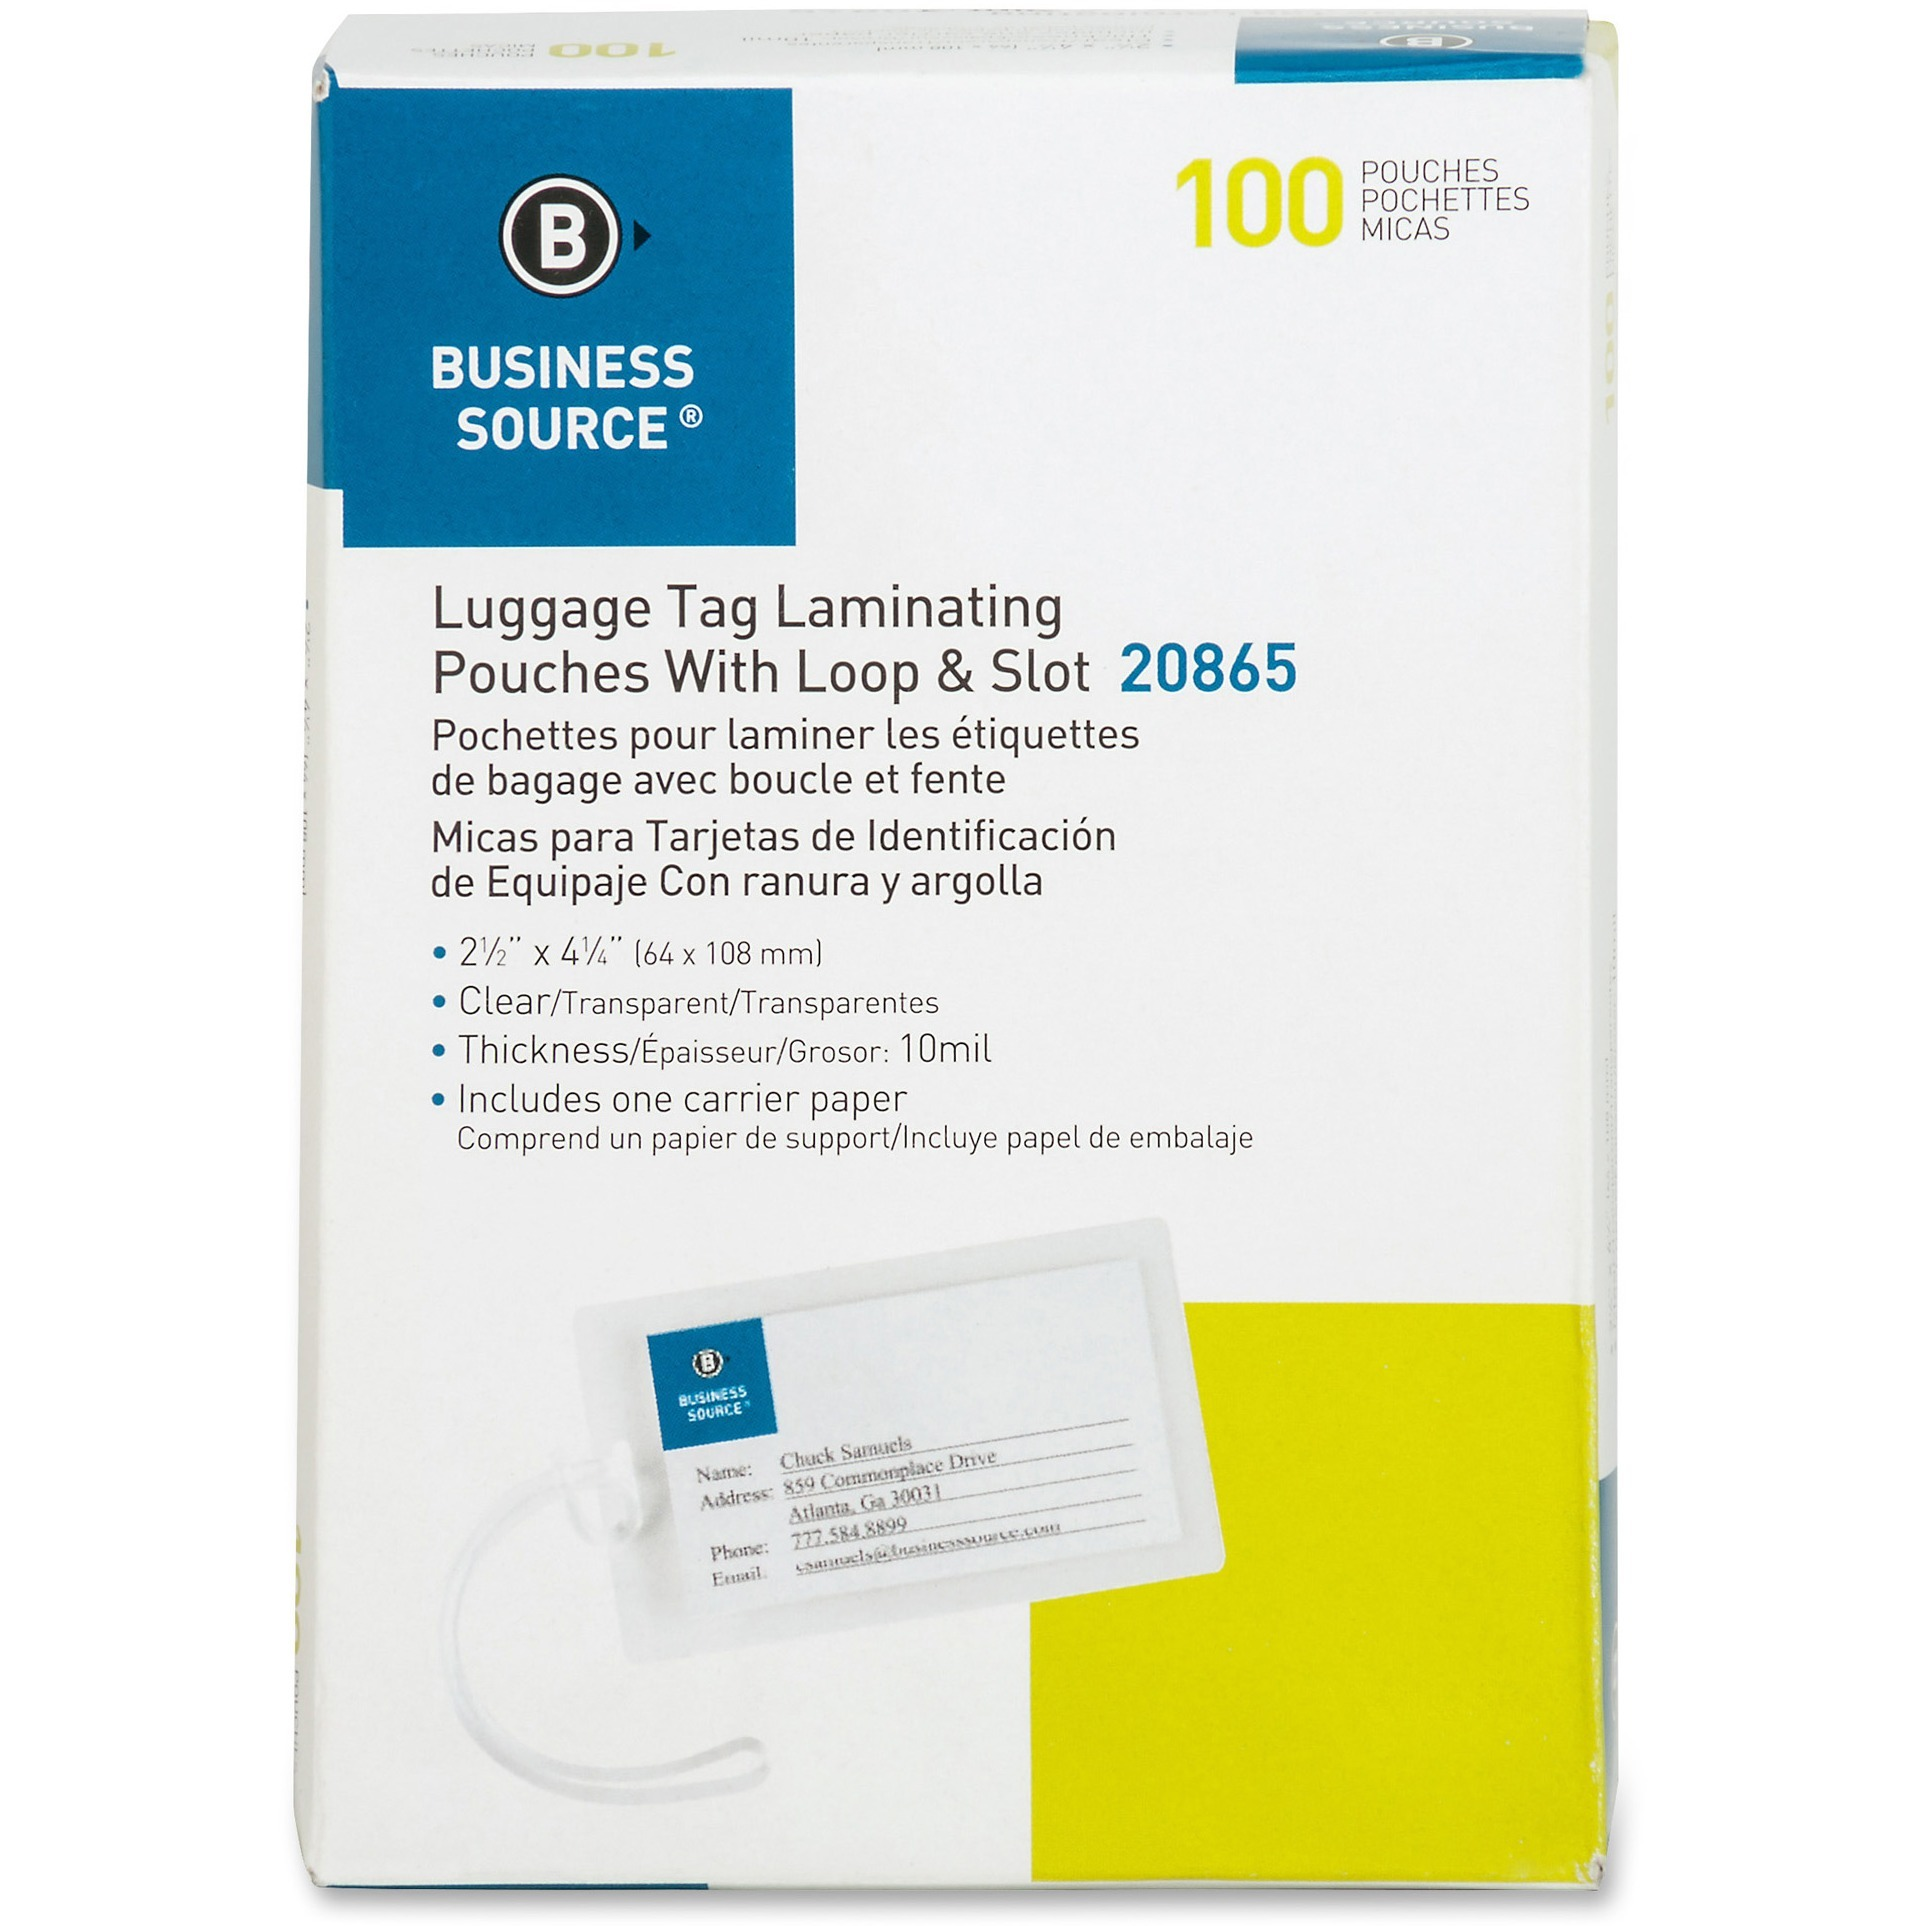 Business Source, BSN20865, Luggage Tag 10 mil Laminating Pouches, 100 / Box, Clear